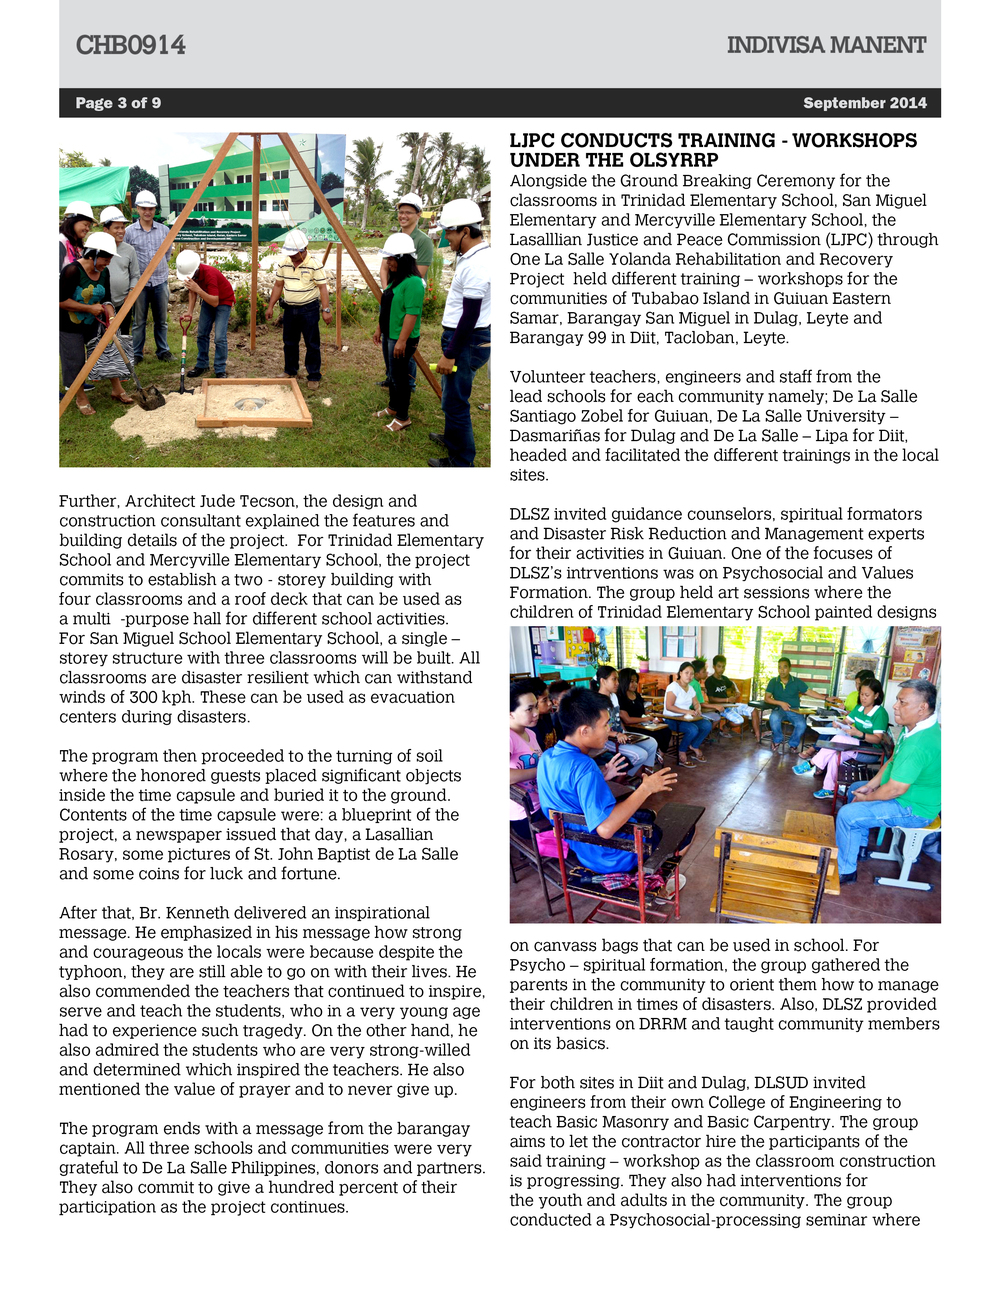 Central house bulletin september 2014 de la salle philippines chb09143g malvernweather Images